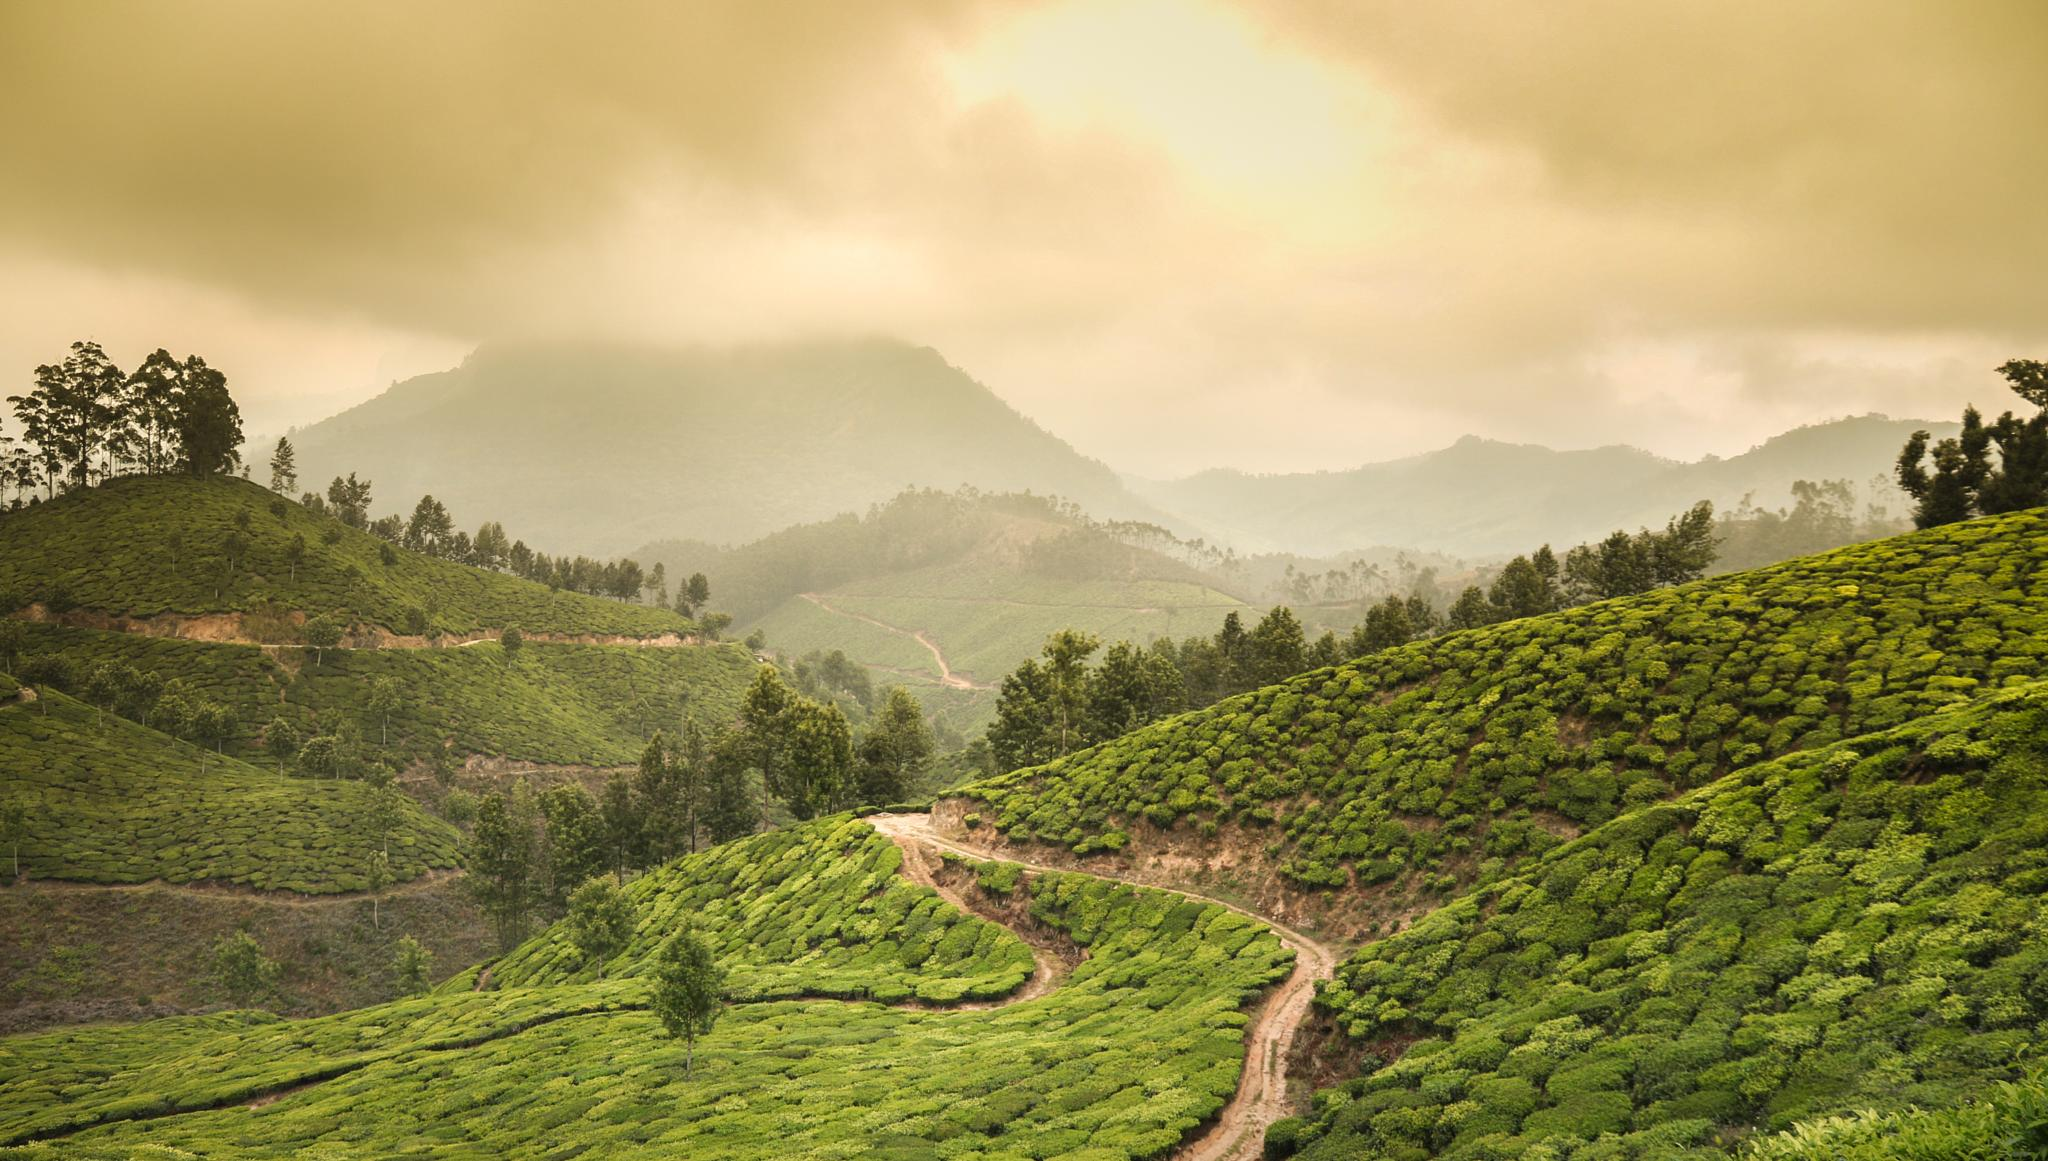 Land of Munnar by Talaster Rodrigues